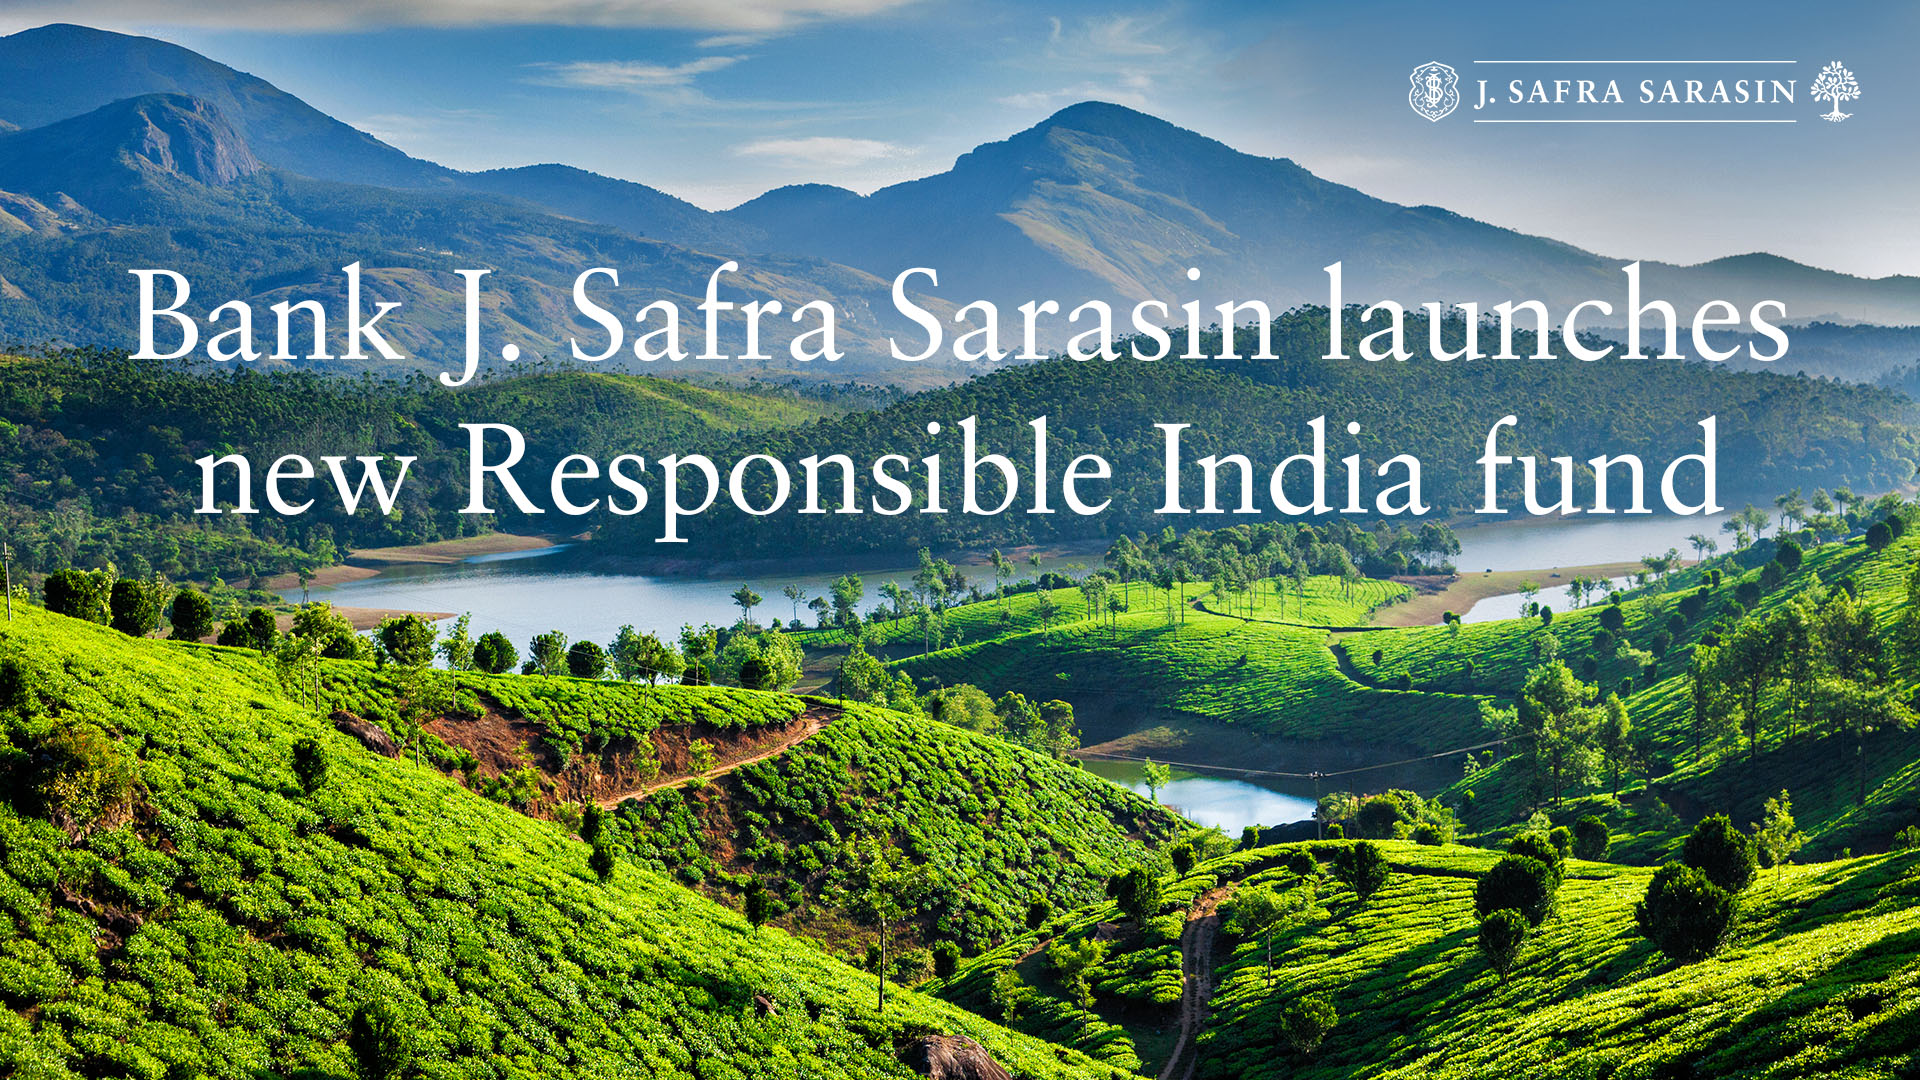 Bank J. Safra Sarasin recently launched the JSS Responsible Equity – India fund, which seeks to capture attractive opportunities in the country's fast-growing economy.